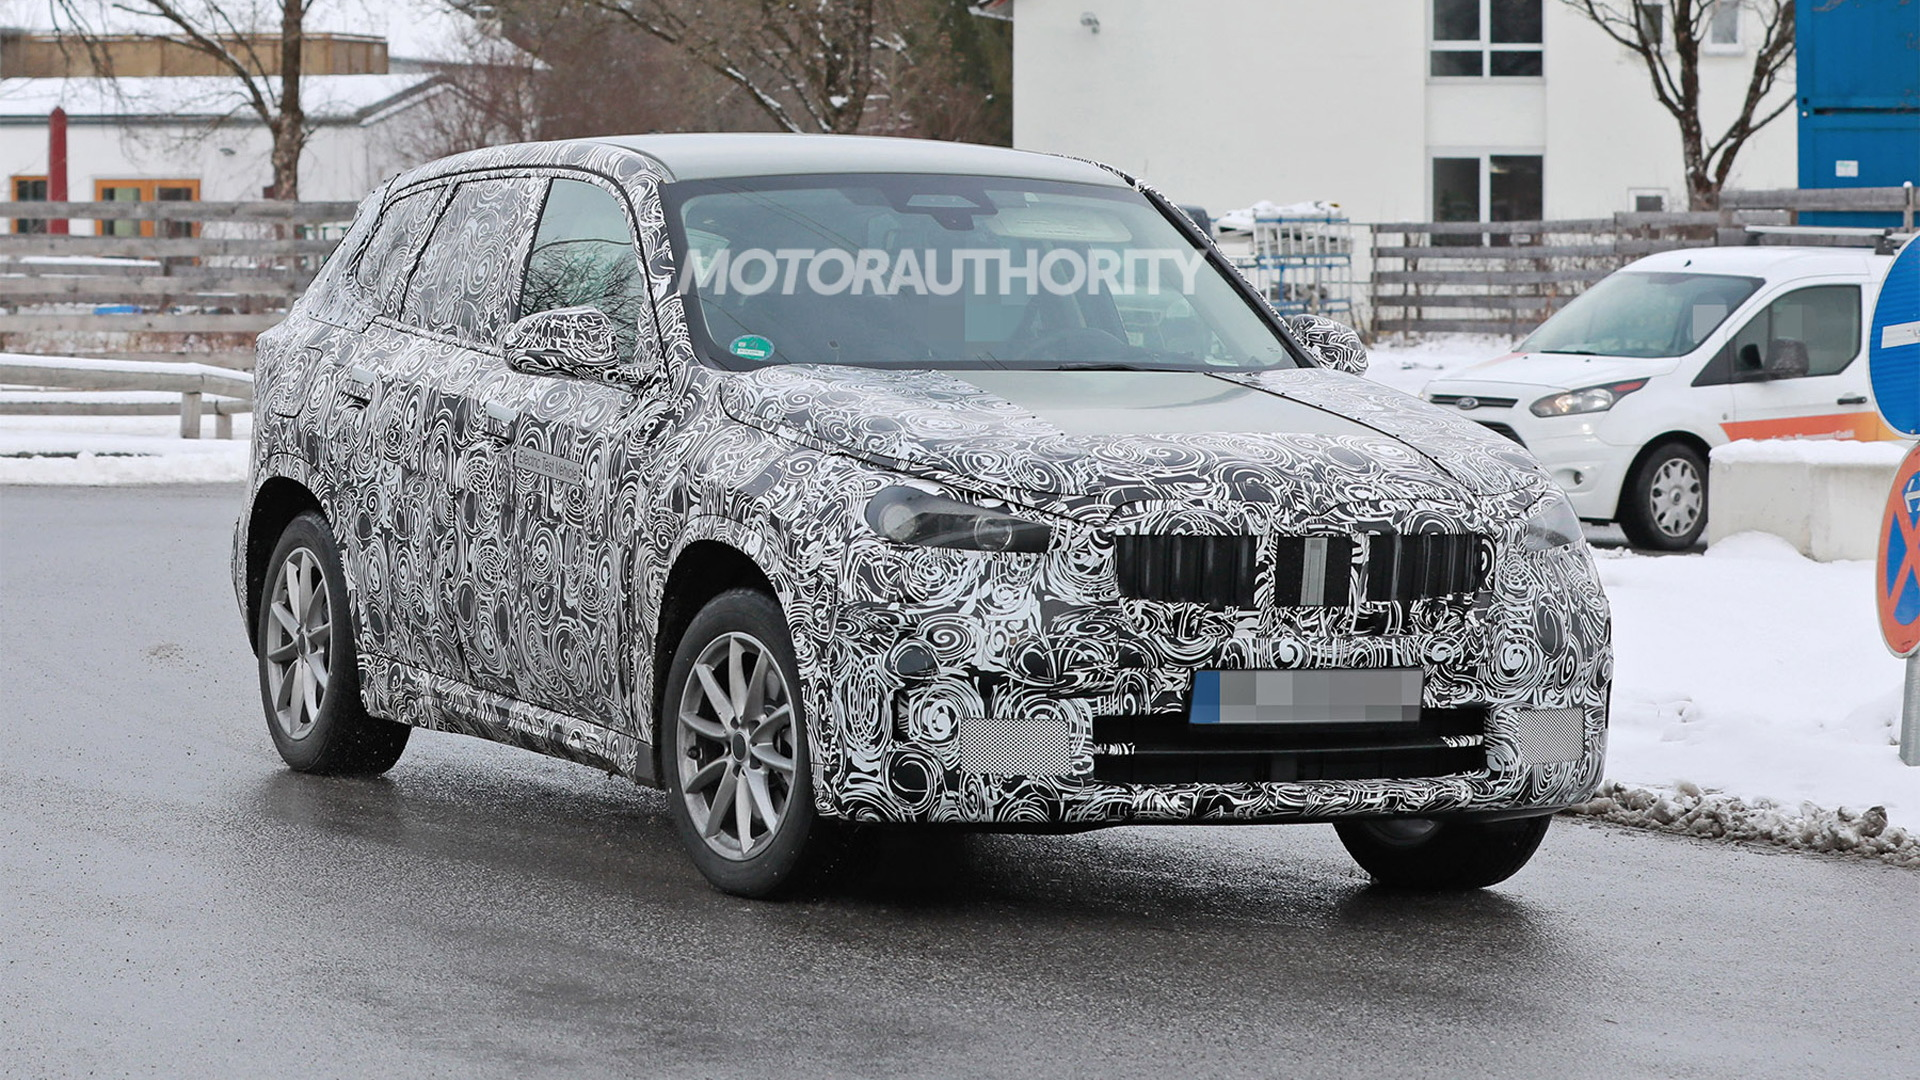 2023 BMW iX1 spy shots - Photo credit: S. Baldauf/SB-Medien